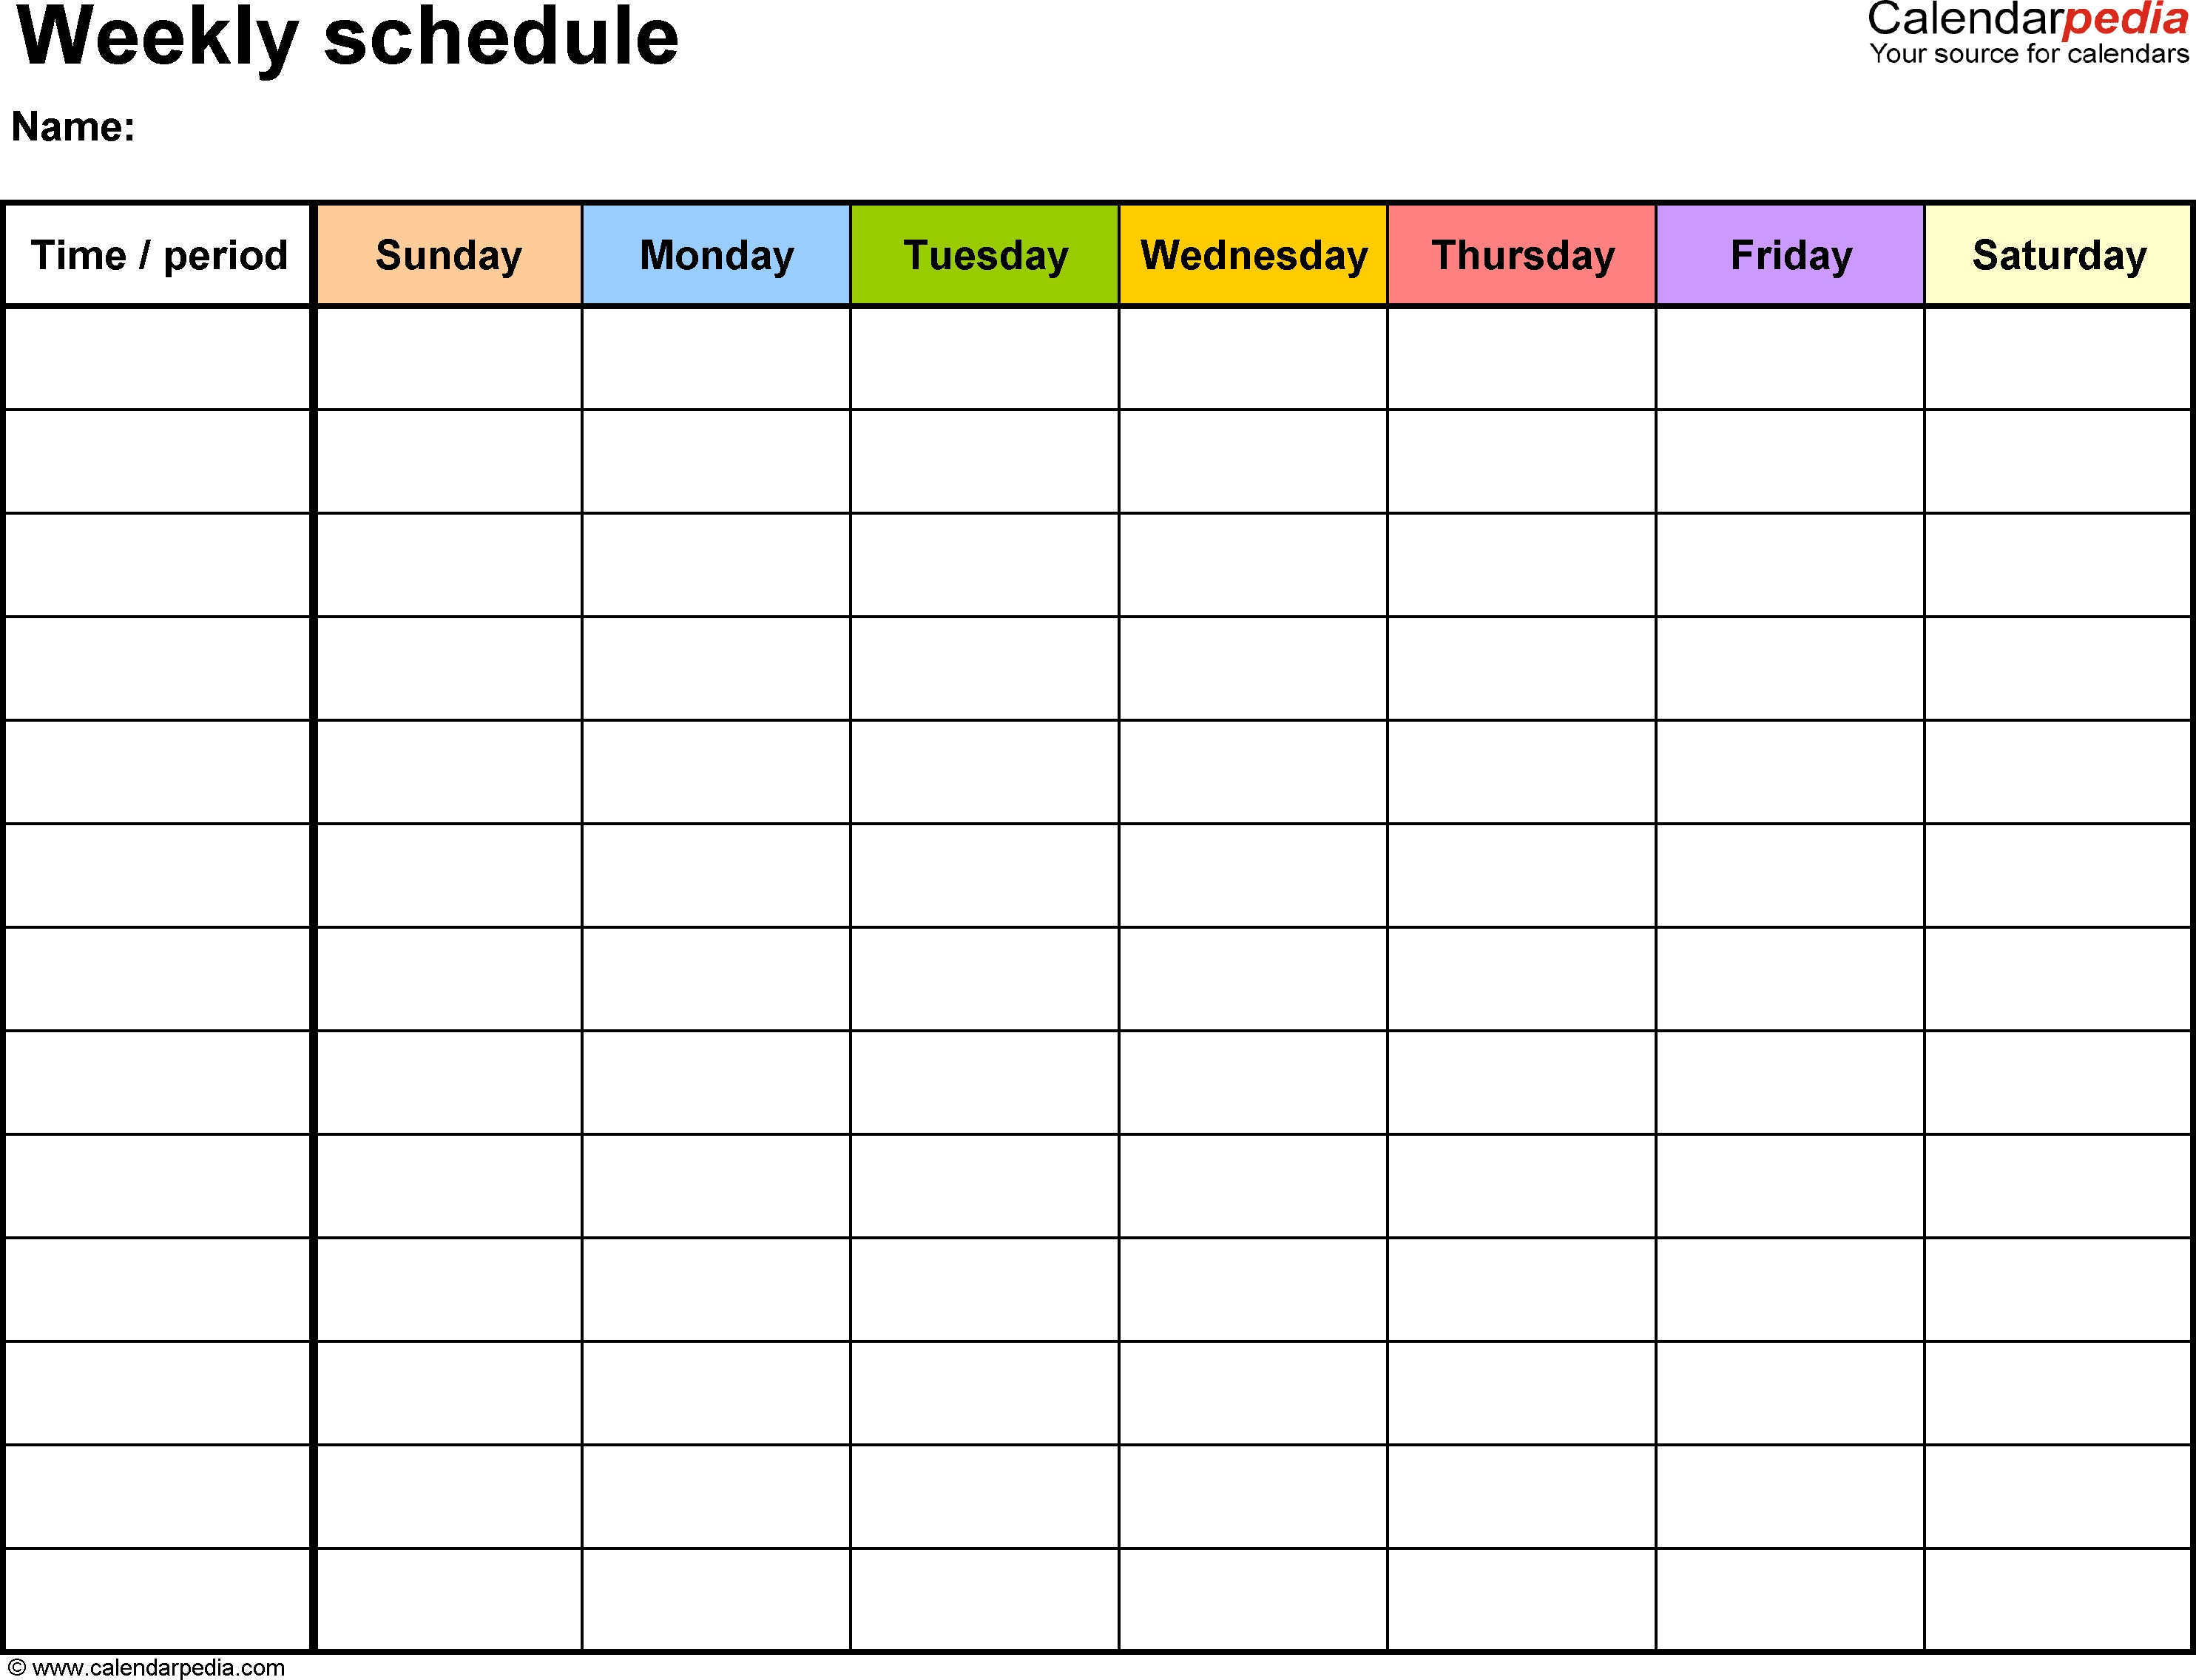 Free Weekly Schedule Templates For Word - 18 Templates  Weekly Schedule Monday - Sunday